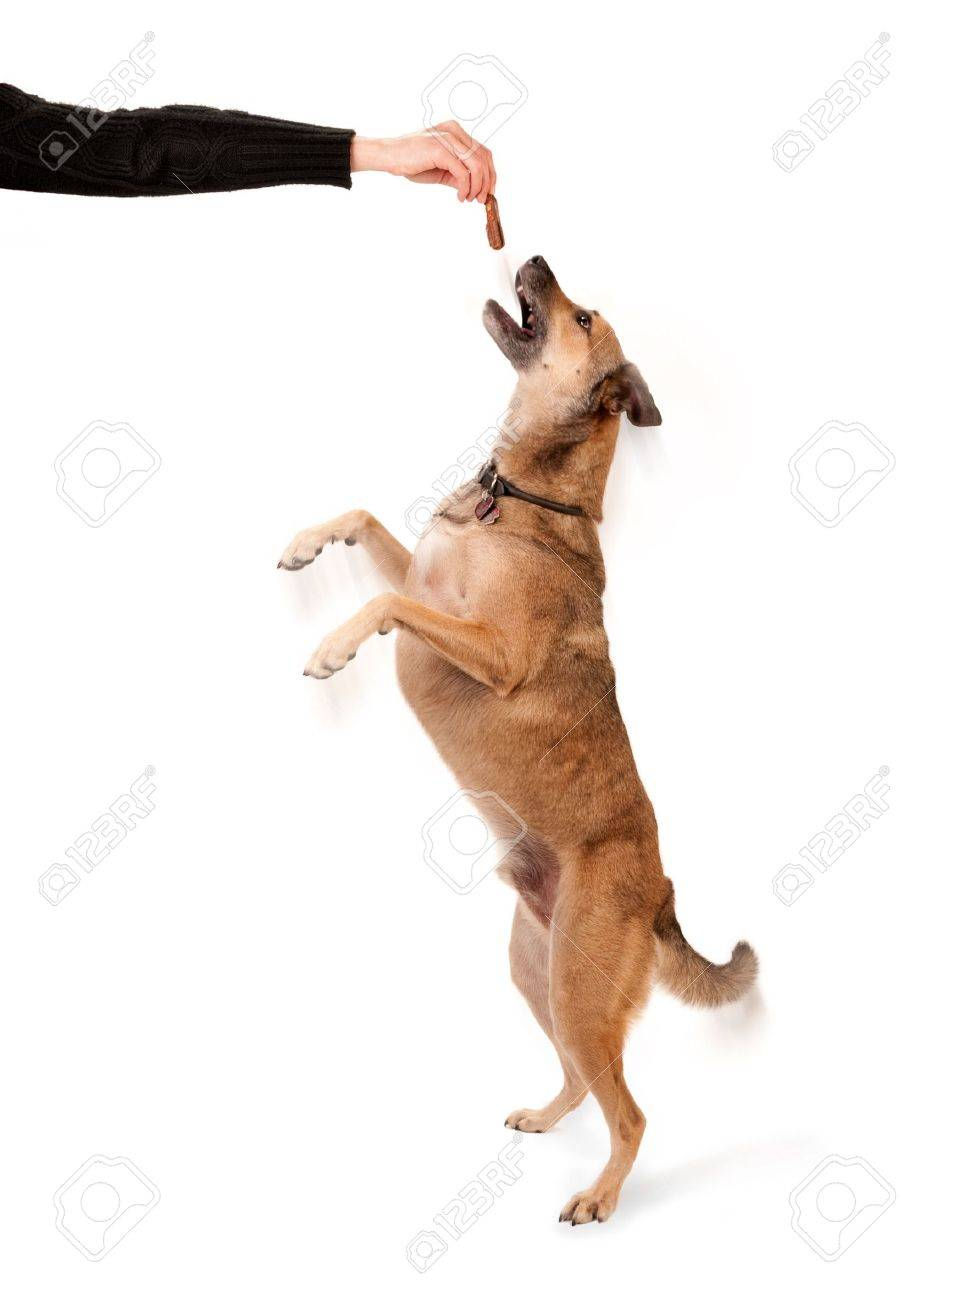 Canine trainer holding a pet treat for jumping dog Stock Photo - 5772714